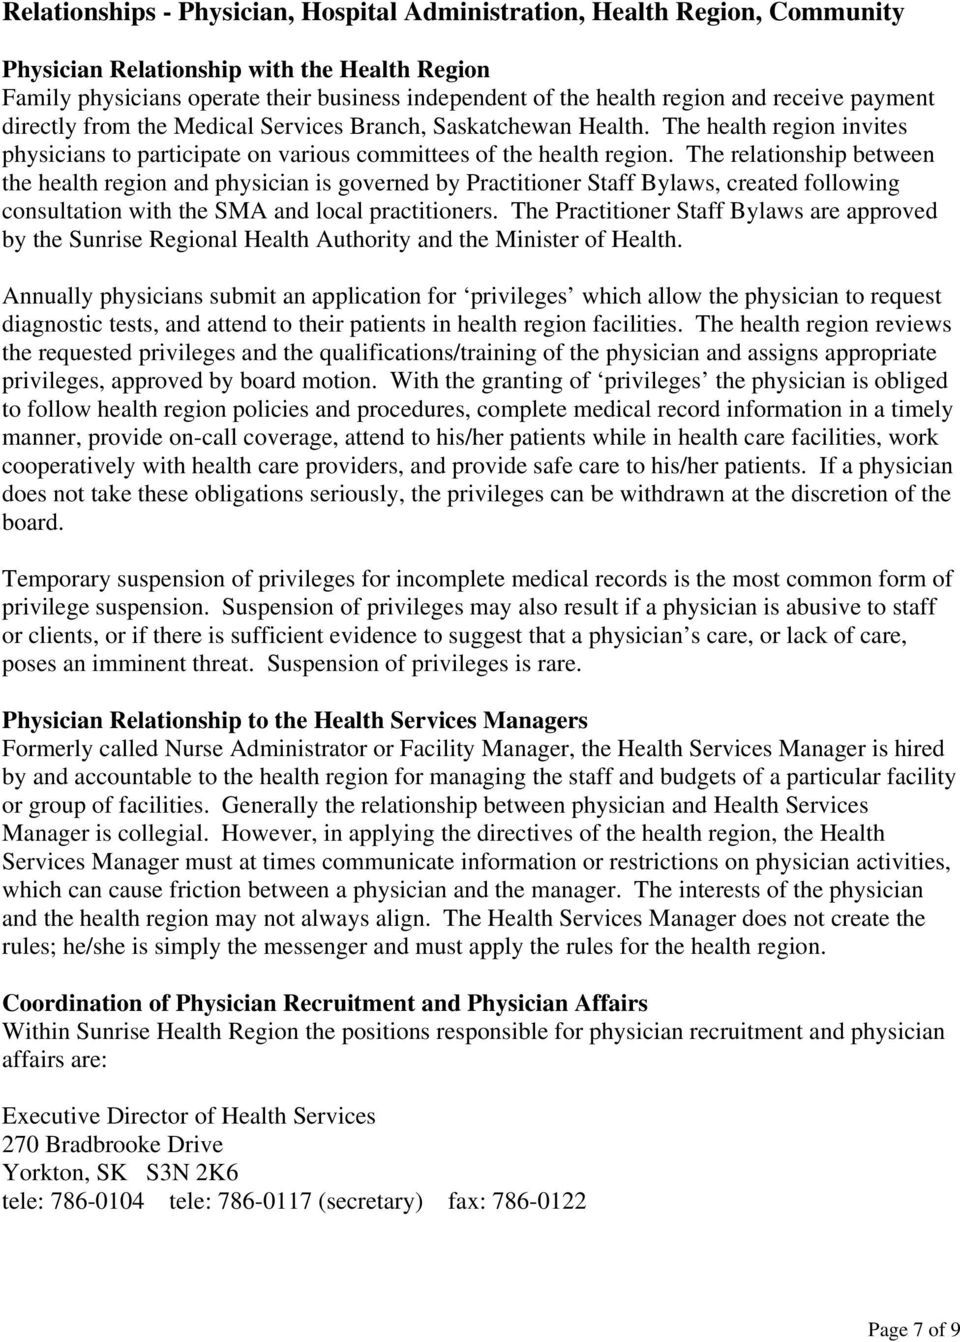 The relationship between the health region and physician is governed by Practitioner Staff Bylaws, created following consultation with the SMA and local practitioners.